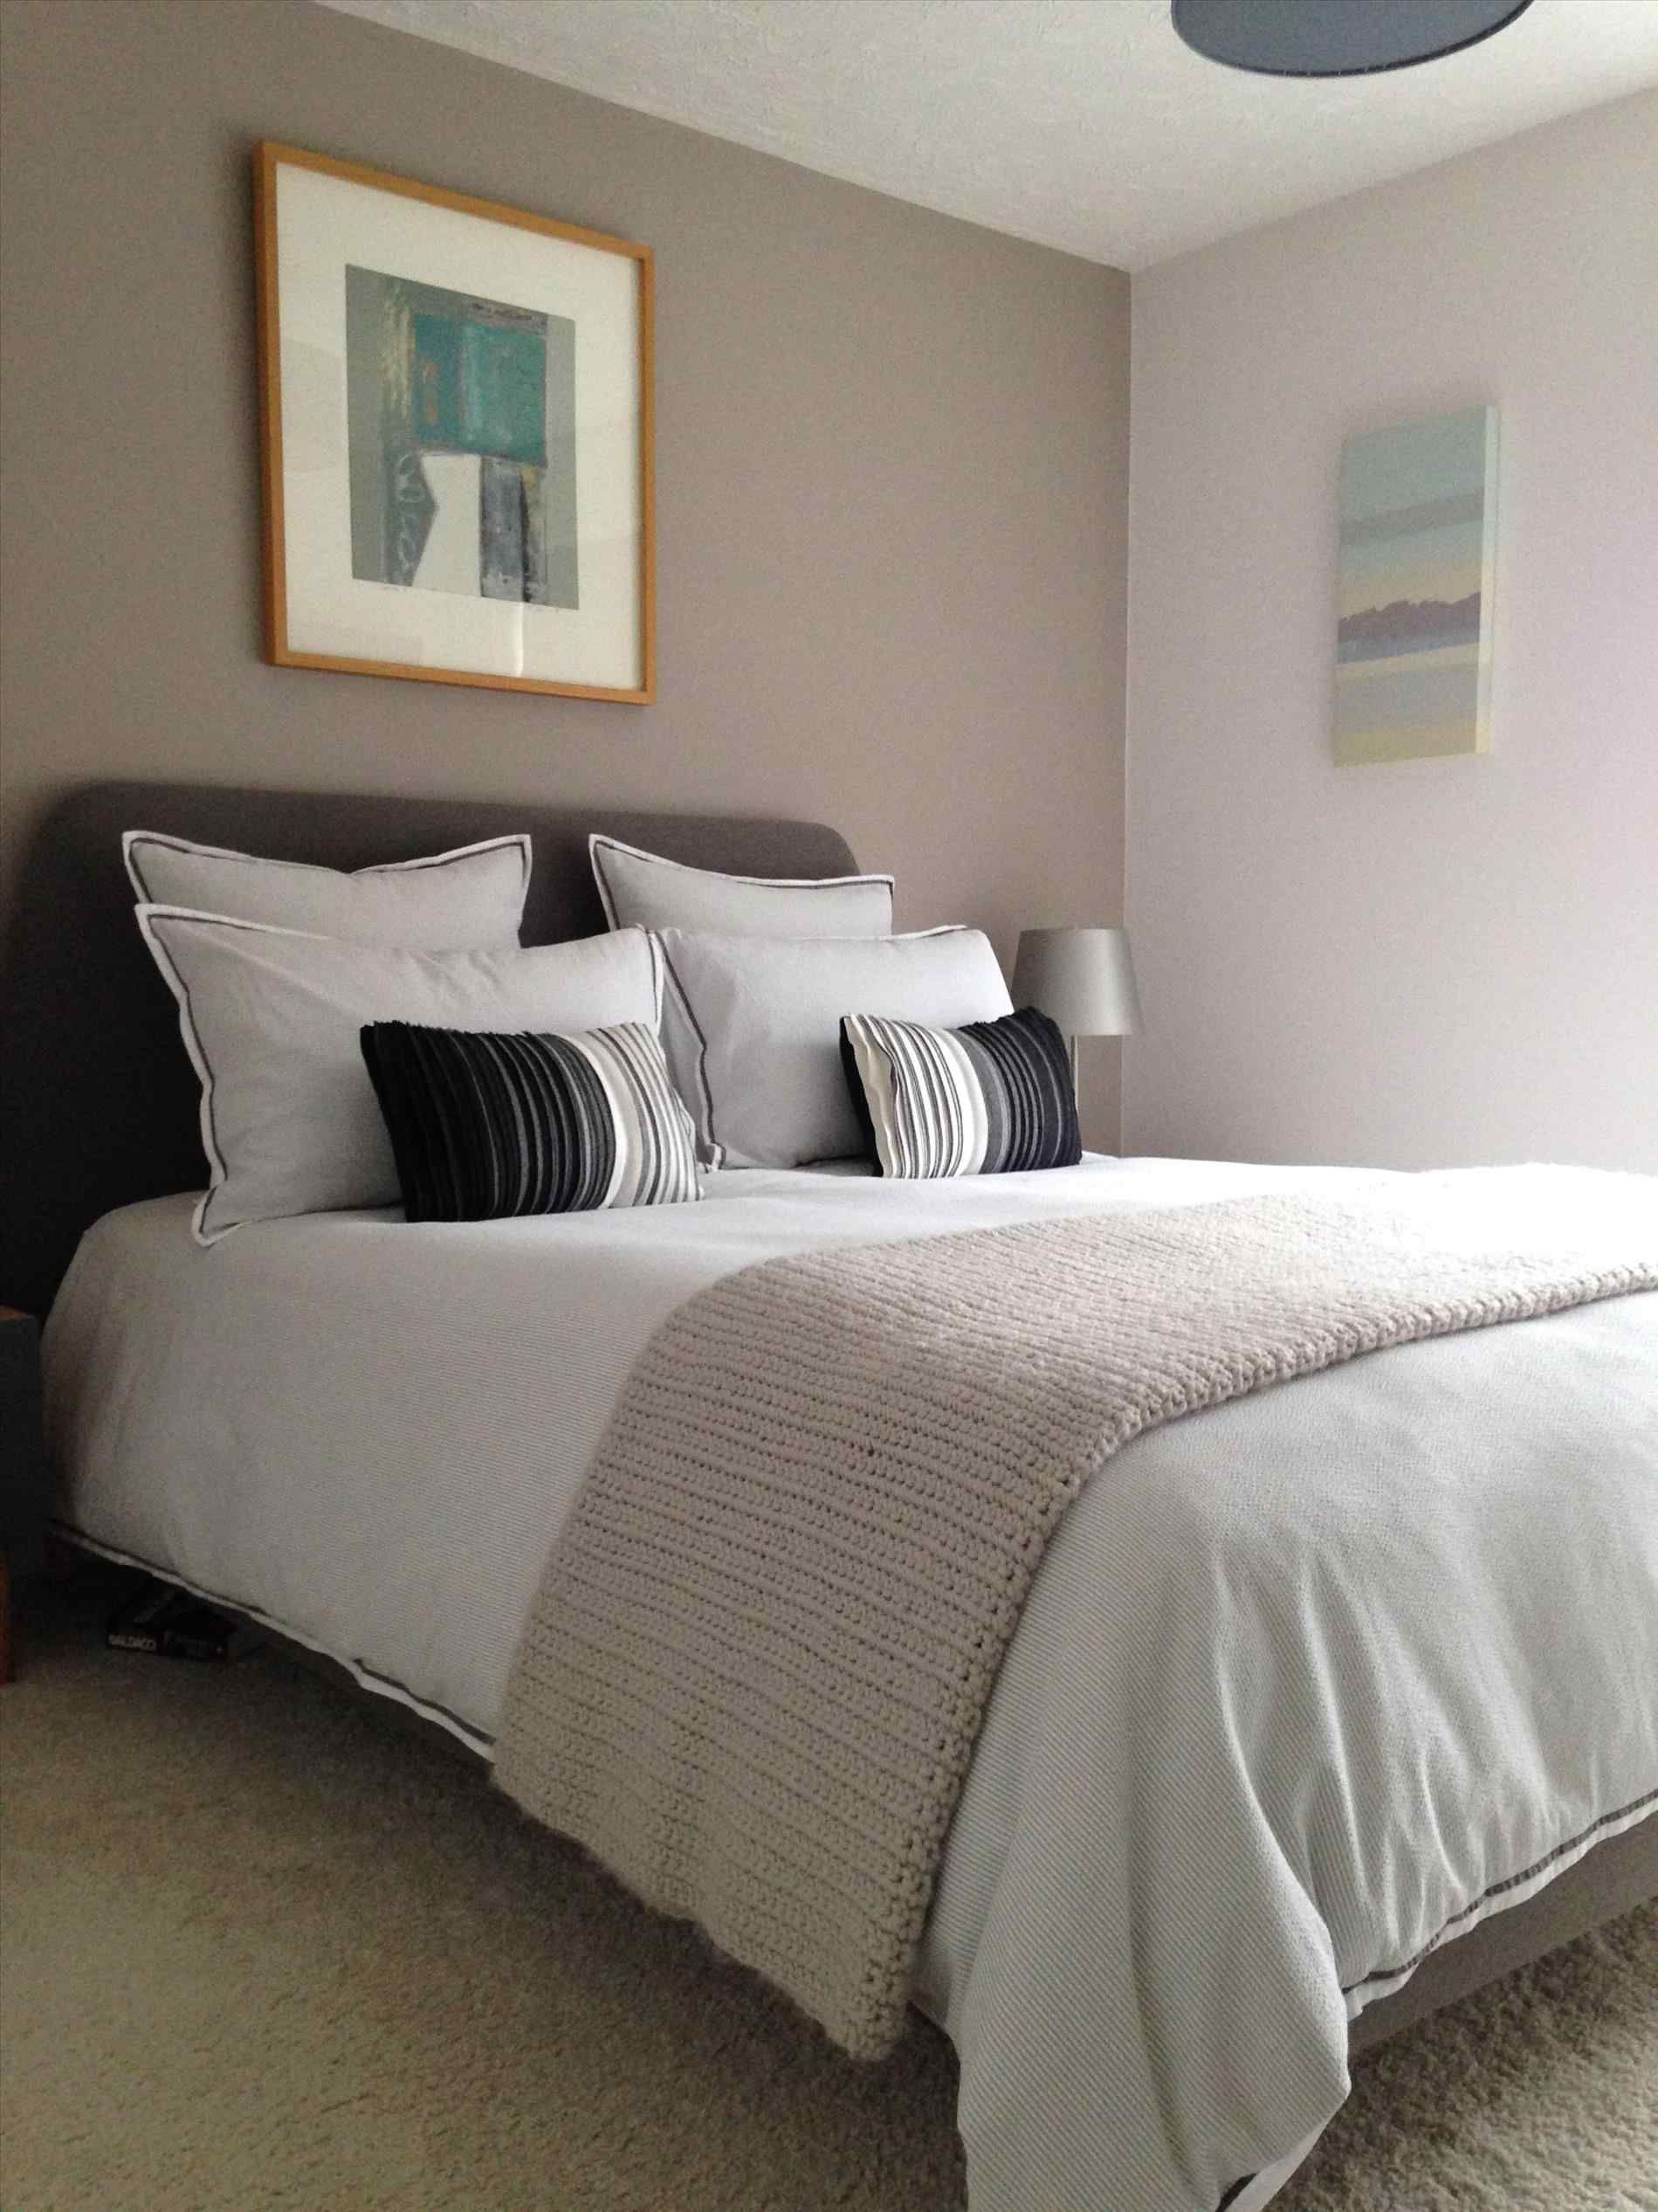 12 Pretty Taupe And Pink Bedroom Ideas for Cozy Inspiration